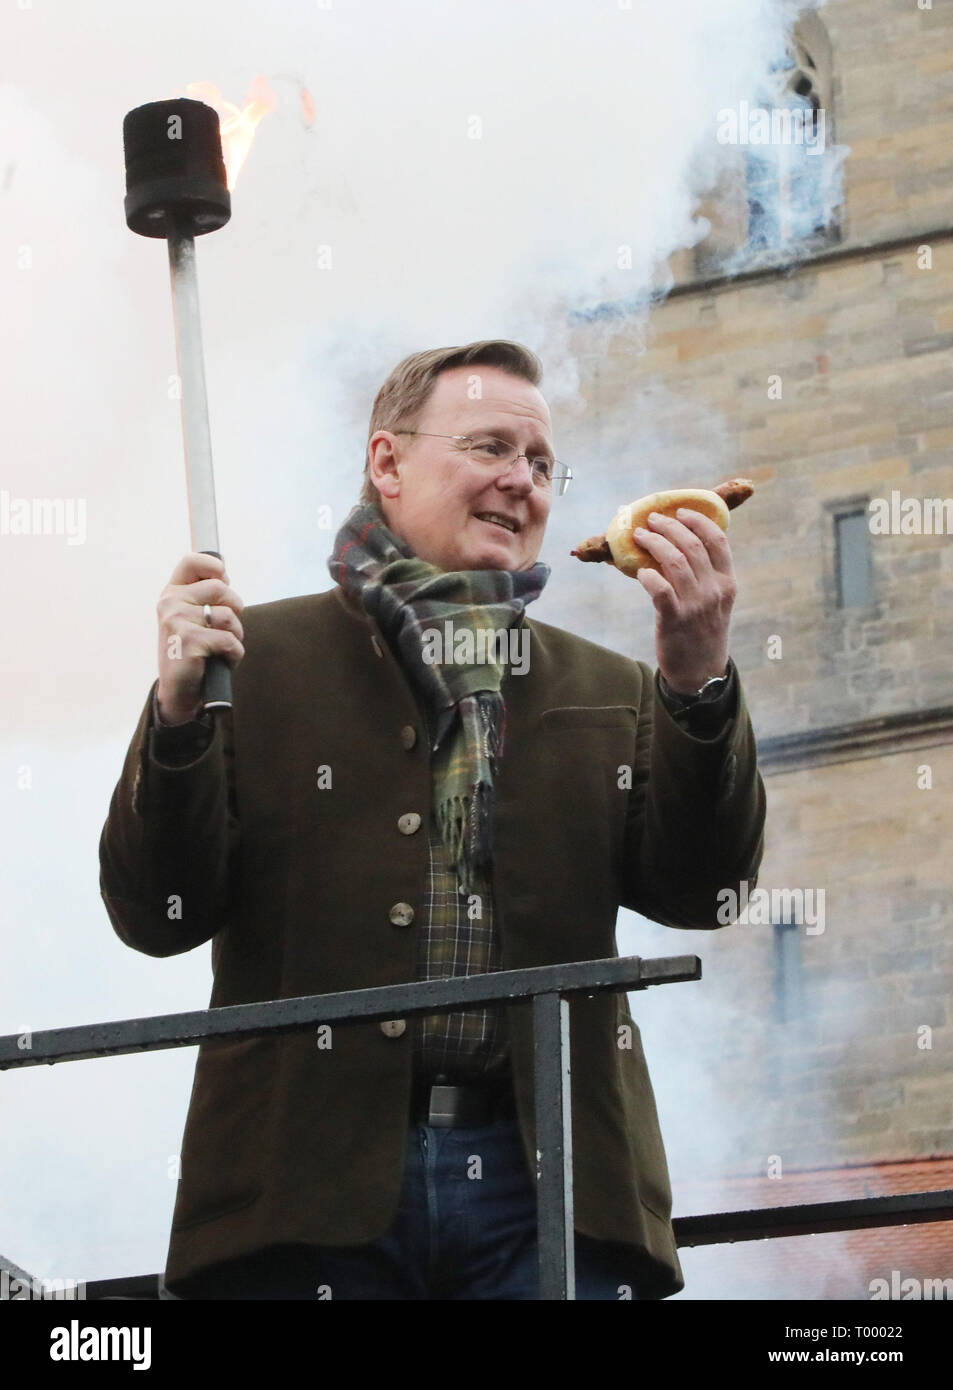 """Erfurt, Germany. 16th Mar, 2019. Thuringia's Prime Minister Bodo Ramelow (Die Linke) holds a grilled sausage and a torch in his hands at the opening of the barbecue season """"RostKultur - Thüringen glows up"""". 13 manufacturers of original Thuringian bratwursts present their sausages on the cathedral square. Credit: Bodo Schackow/dpa-Zentralbild/dpa/Alamy Live News Stock Photo"""